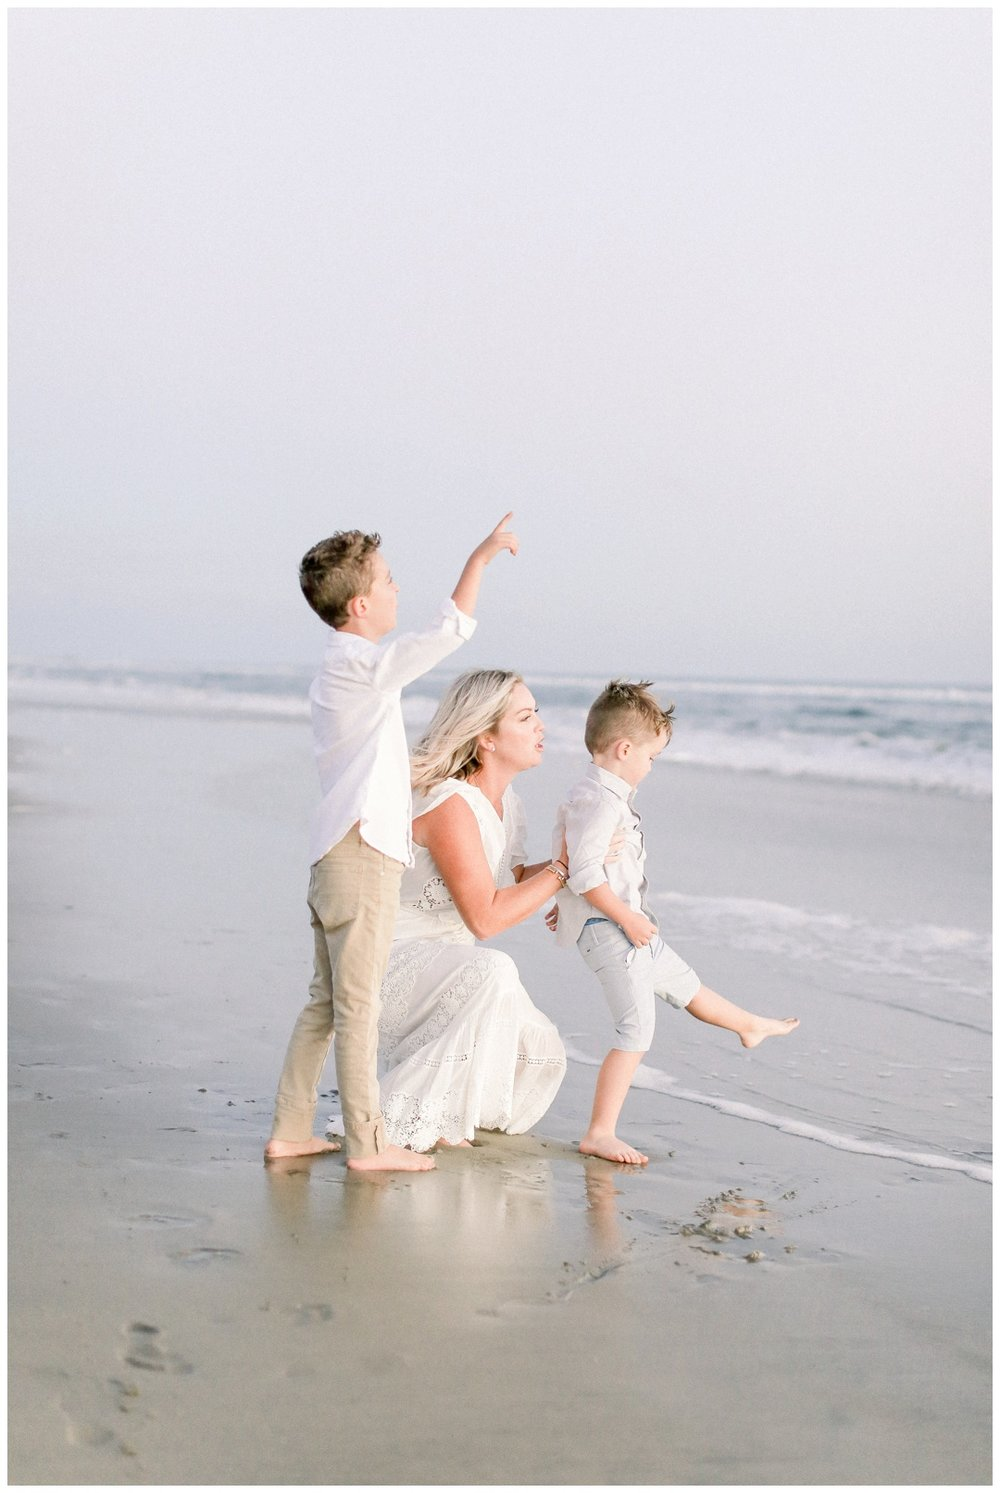 Newport_Beach_Family_Photographer_Newport_Beach_Newborn_Photographer_Orange_County_Family_Photographer_Cori_Kleckner_Photography_Huntington_Beach_San_Clemente_Family_Session_Photography__2356.jpg